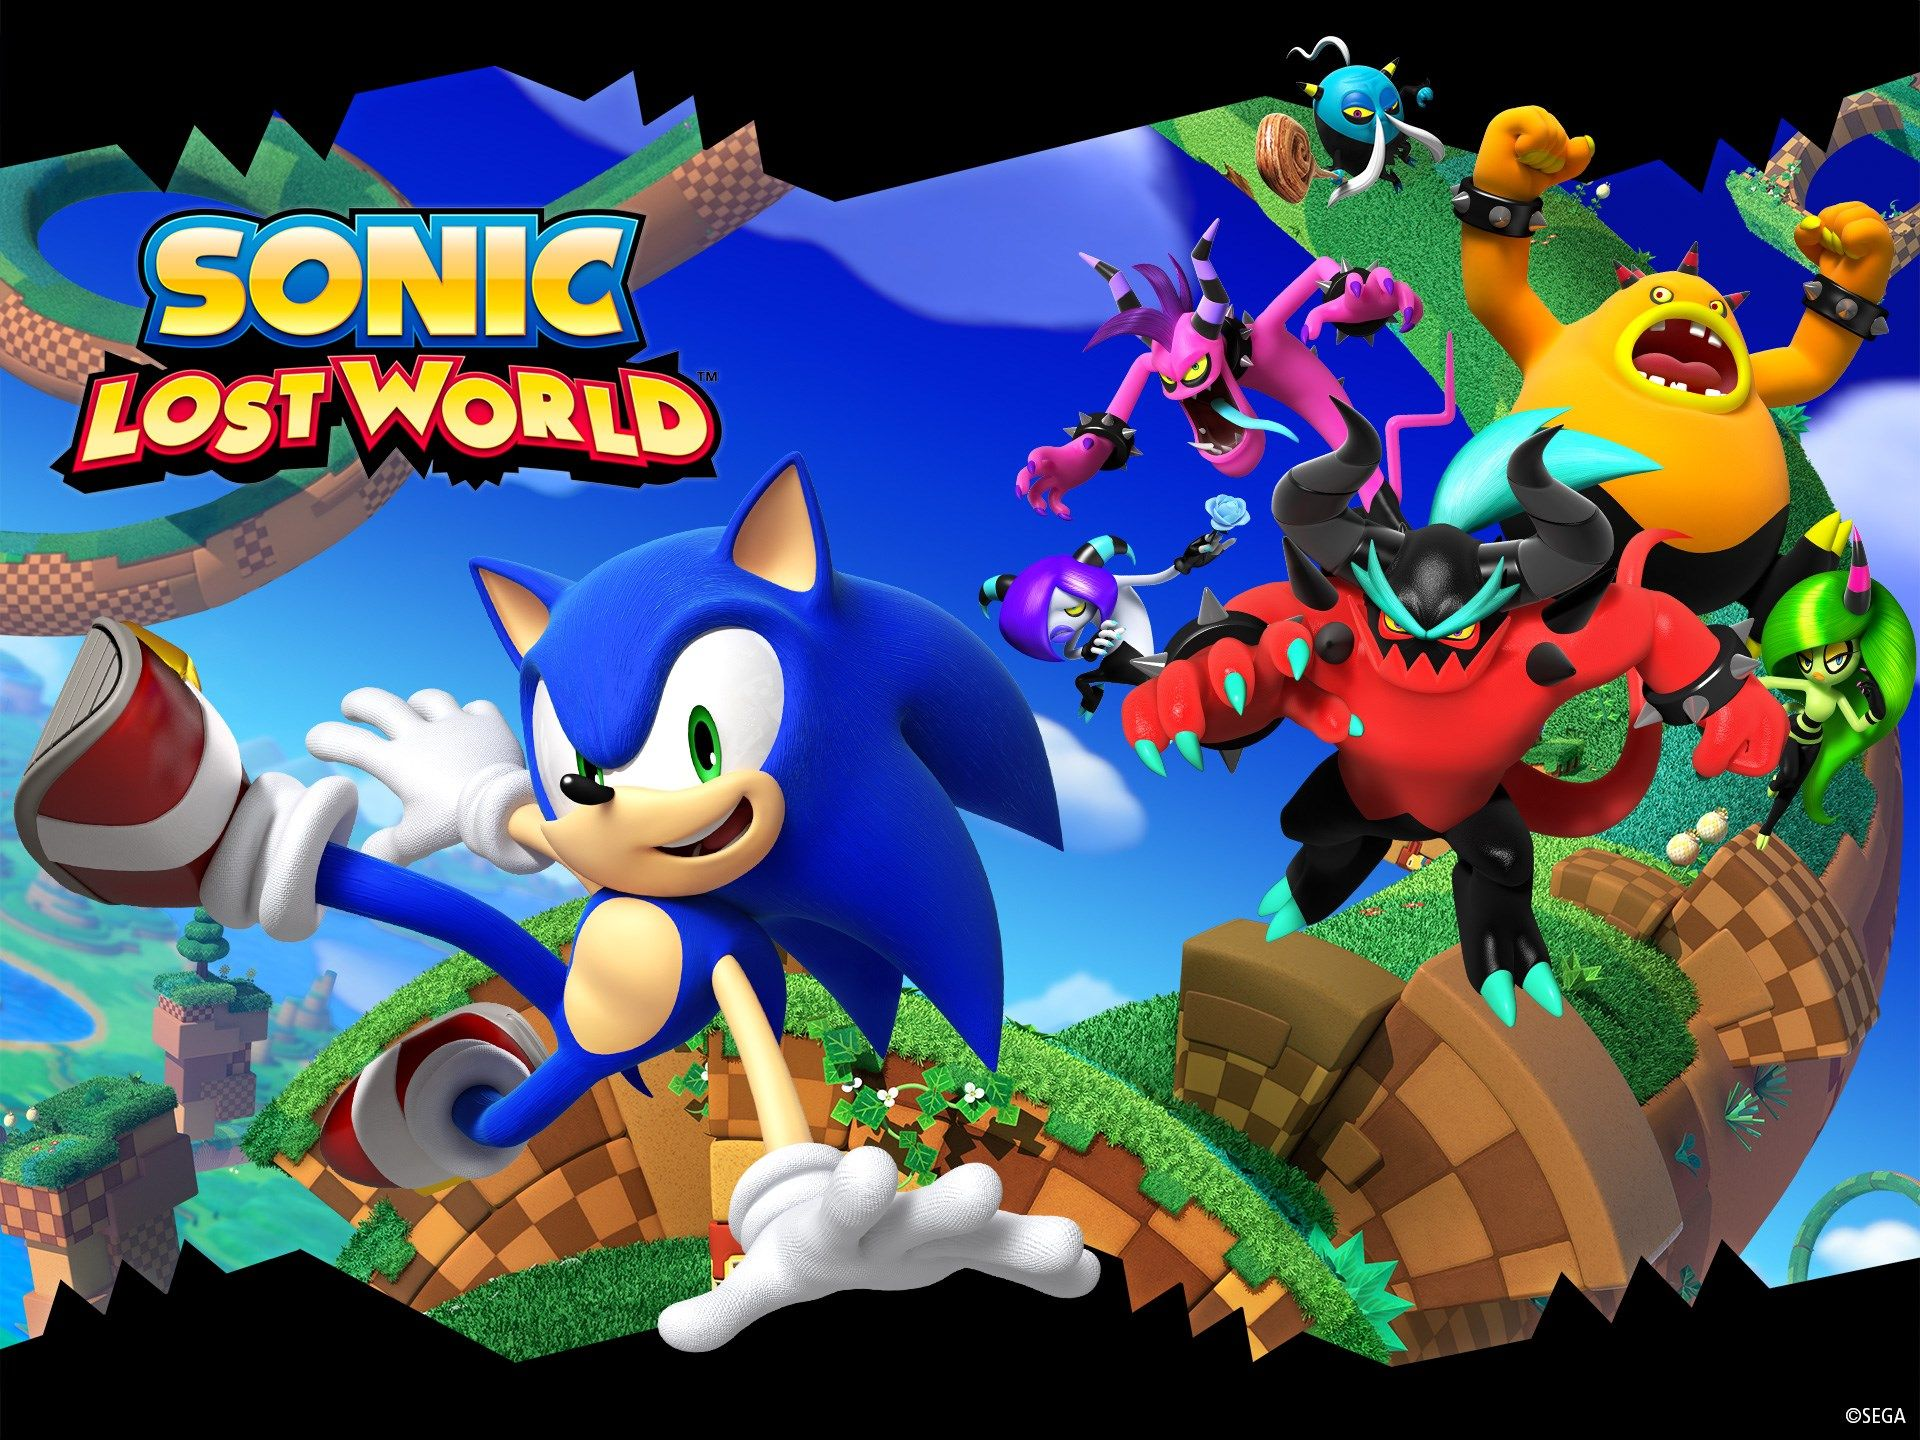 sonic lost world widescreen retina imac World wallpaper